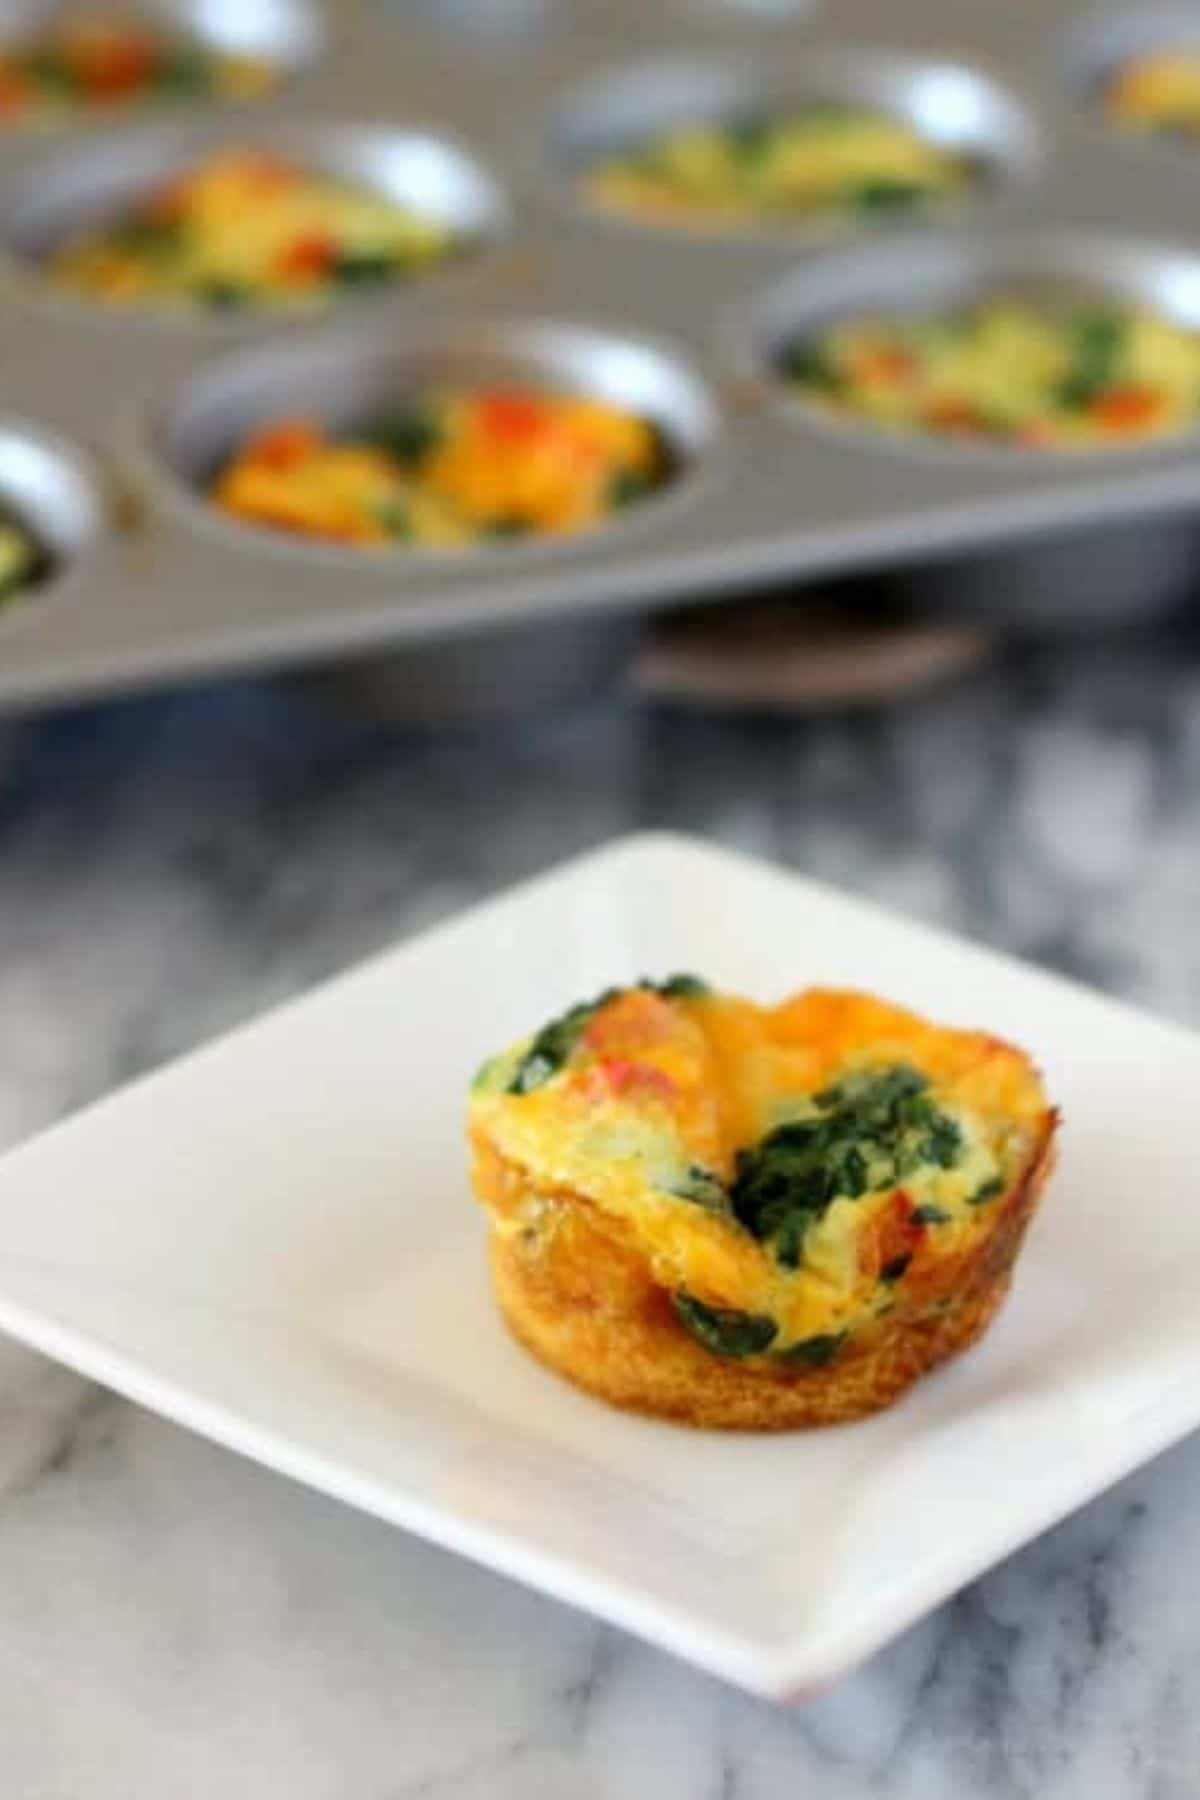 Single egg muffin on square white plate by muffin tin on table